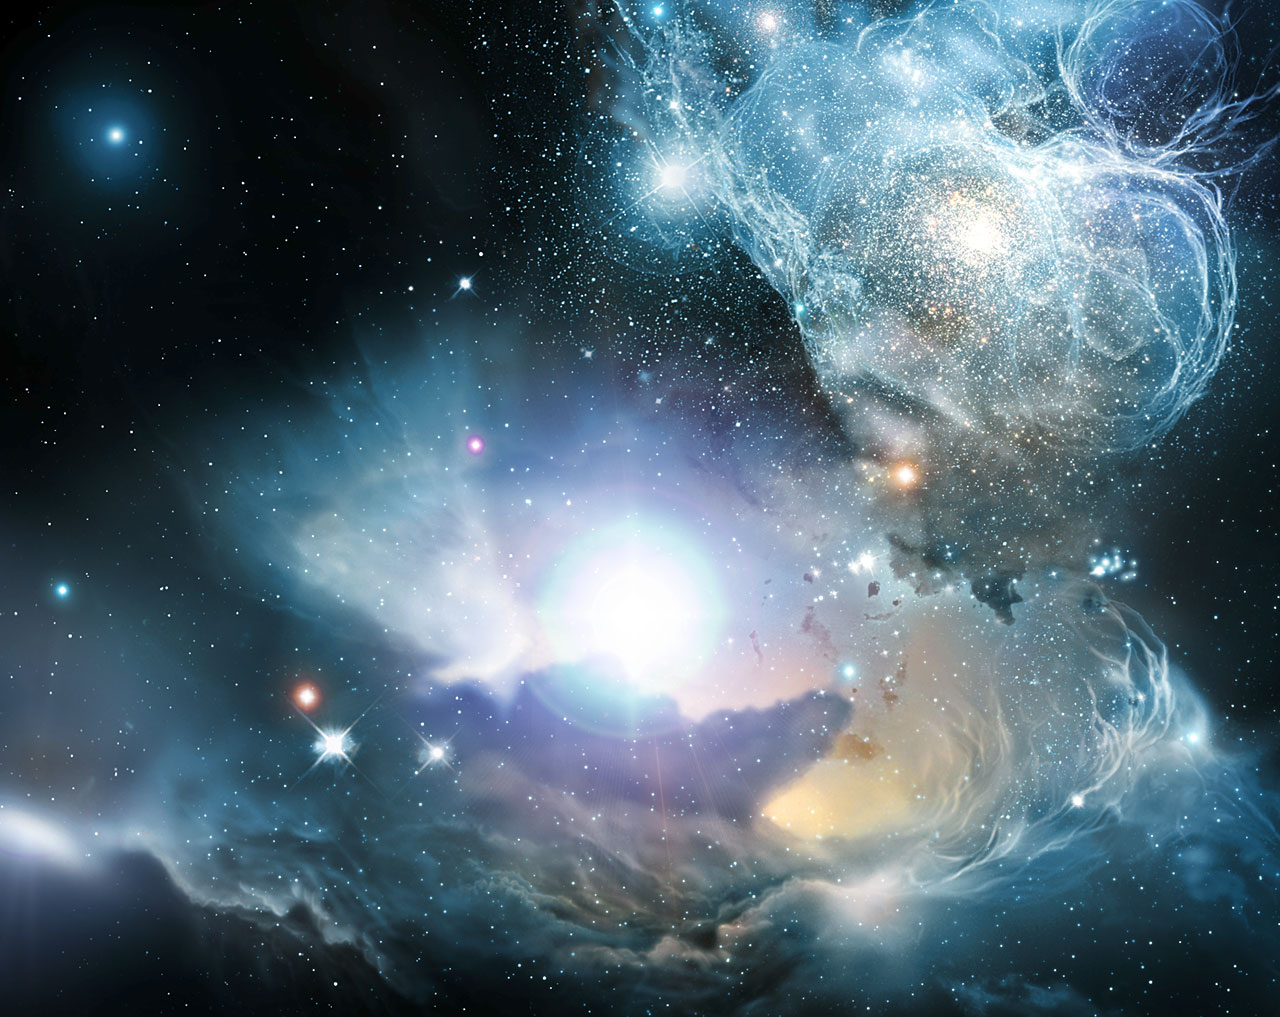 Finding the ashes of the first stars [artist's impression]